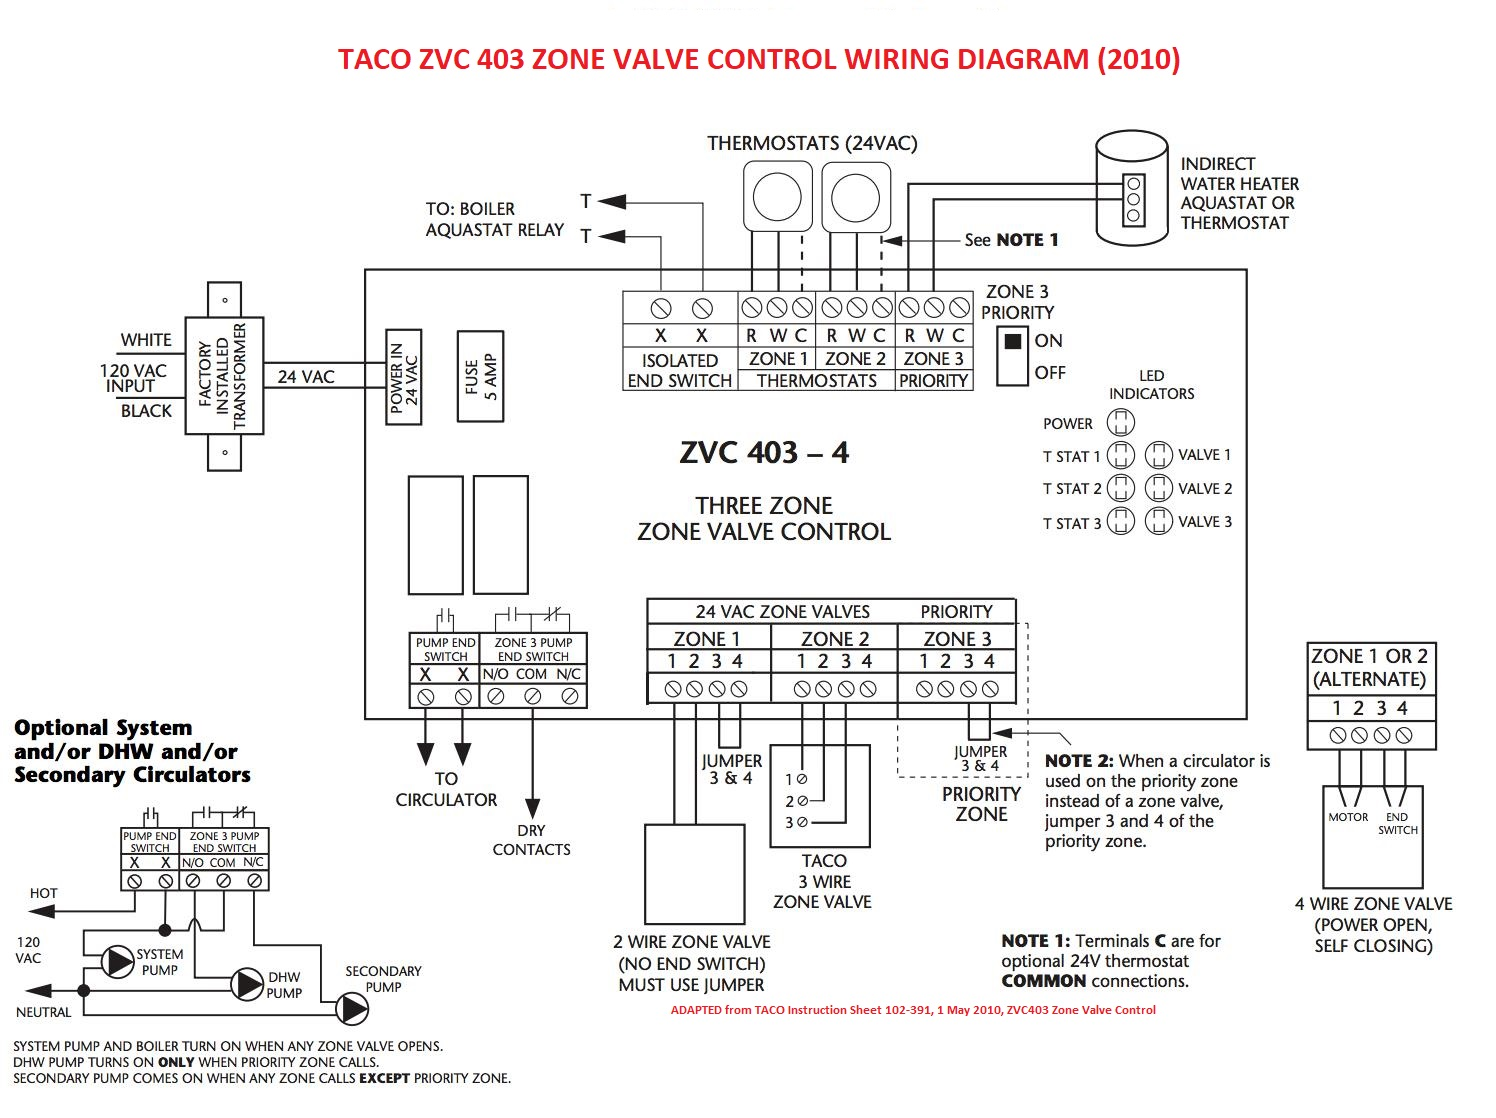 Basic Vdc Electrical Wiring Diagrams on electrical junction box diagrams, basic circuit diagrams, lighting electrical diagrams, basic ac electrical power diagrams, basic tractor wiring diagram, basic wiring schematics, understanding electrical diagrams, basic electrical ladder diagram, basic hvac diagrams, basic electrical schematic diagrams, basic motorcycle wiring diagram, basic electrical engineering diagrams, basic furnace wiring diagram, electrical symbols and diagrams, kawasaki electrical diagrams, basic switch wiring diagram, basic electrical symbols, electrical connections diagrams, basic wire diagrams, series and parallel circuits diagrams,